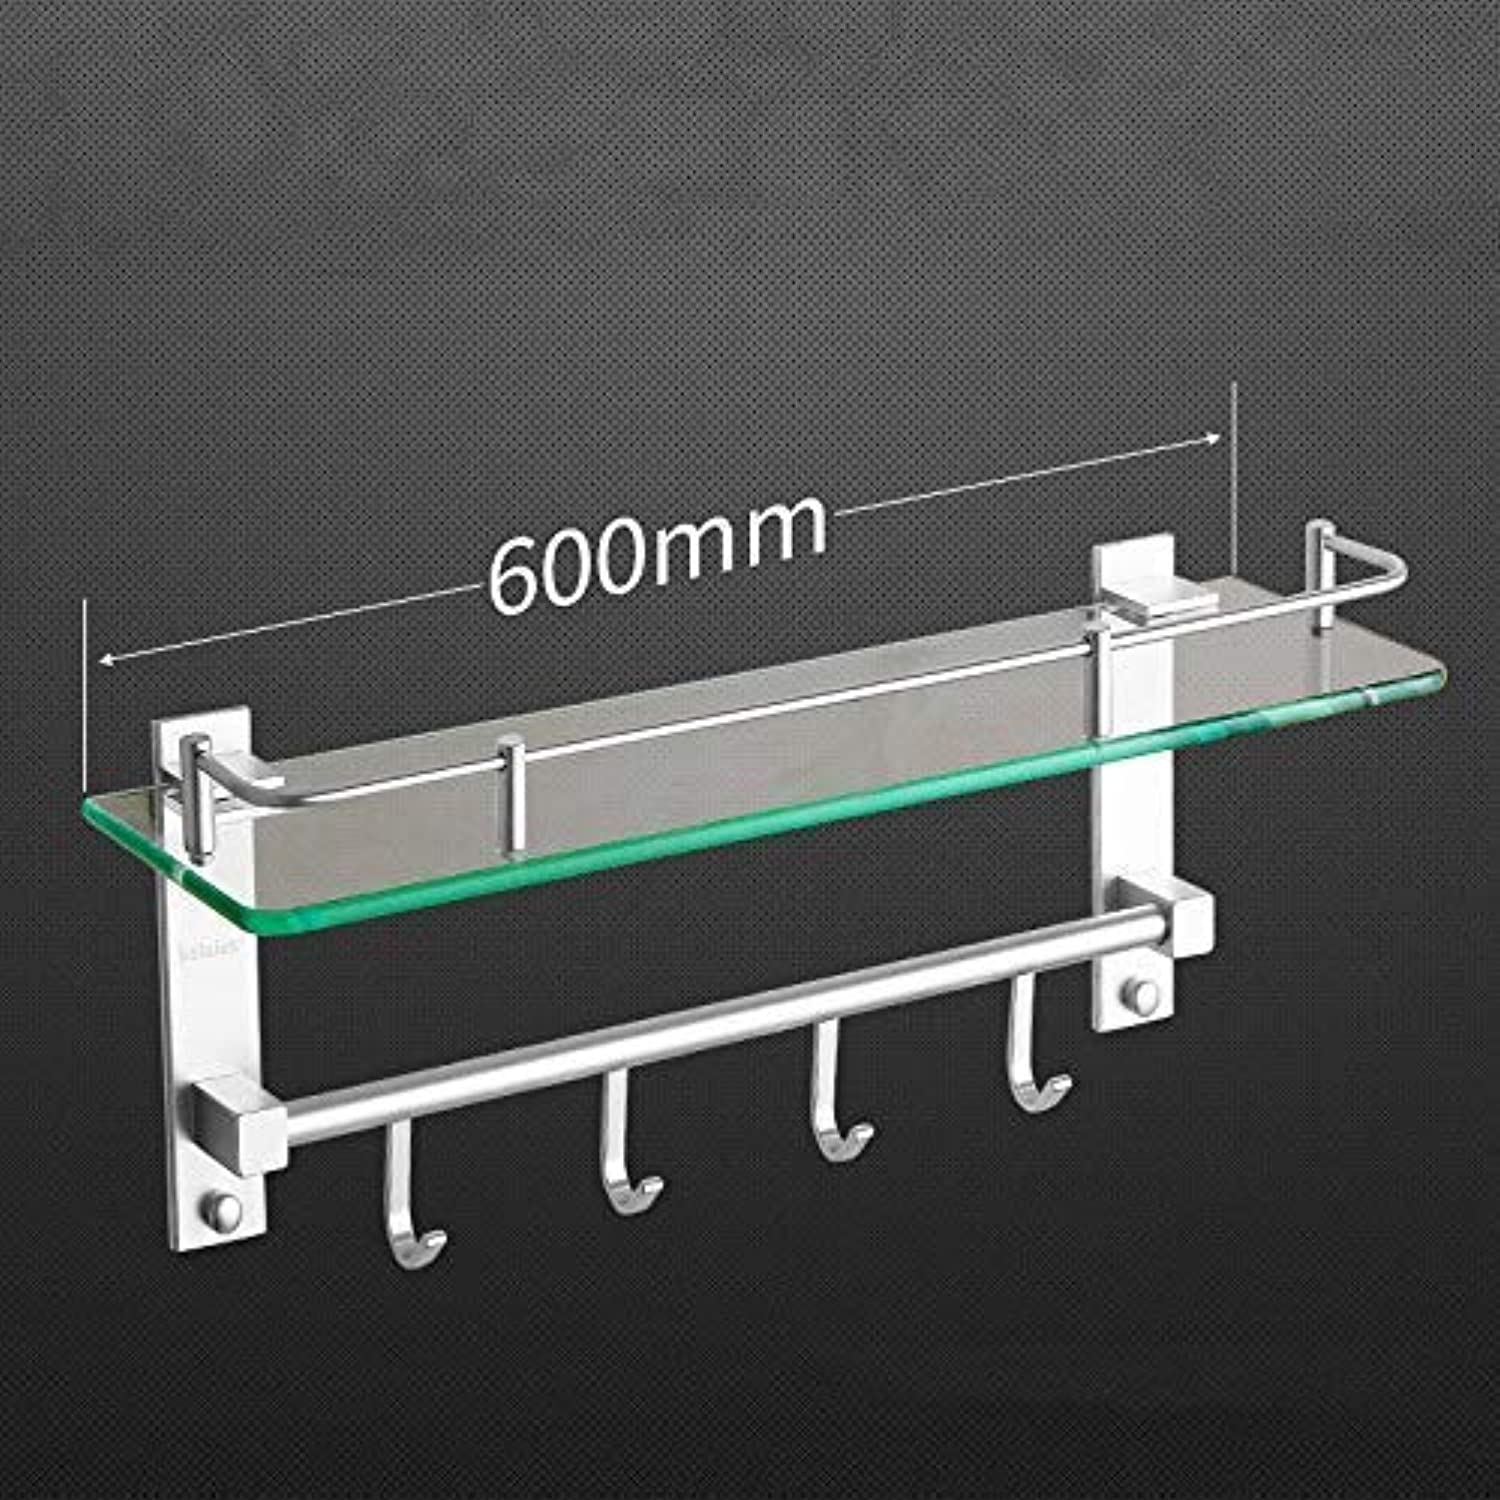 Wghz Space Aluminum Glass Shelf (color   Long 600mm)